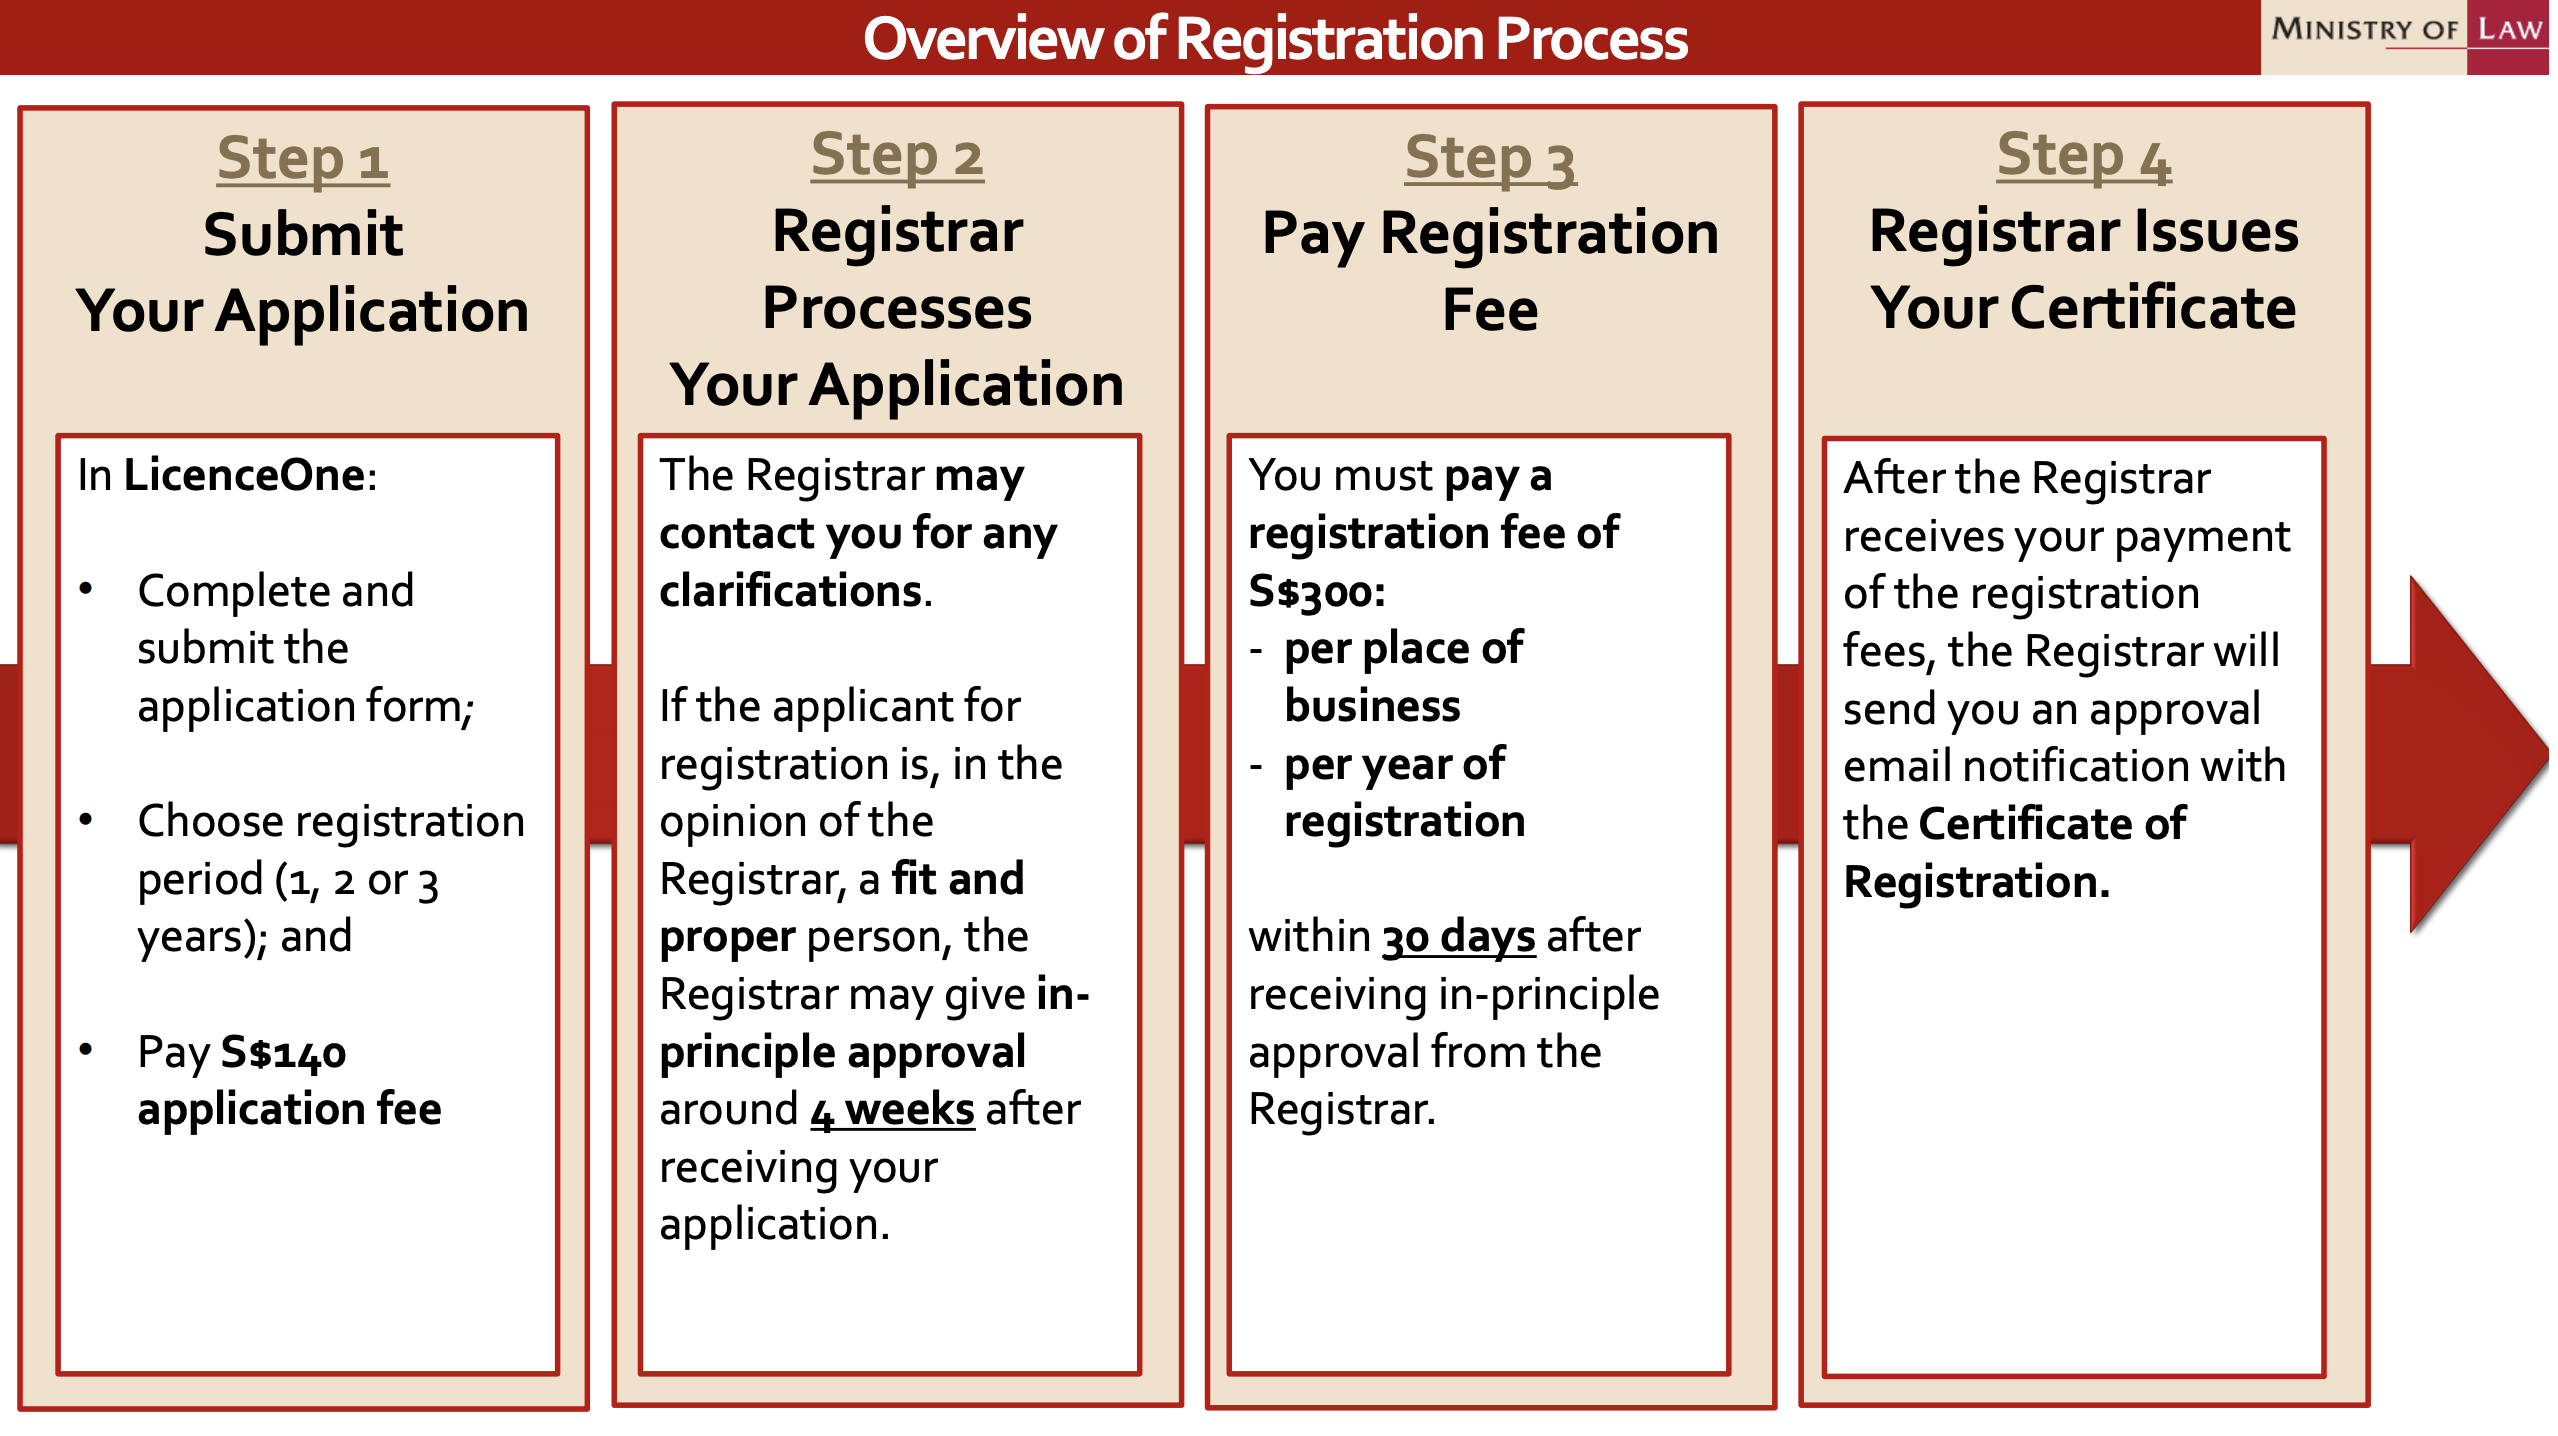 Overview of Registration Process by Ministry of Law